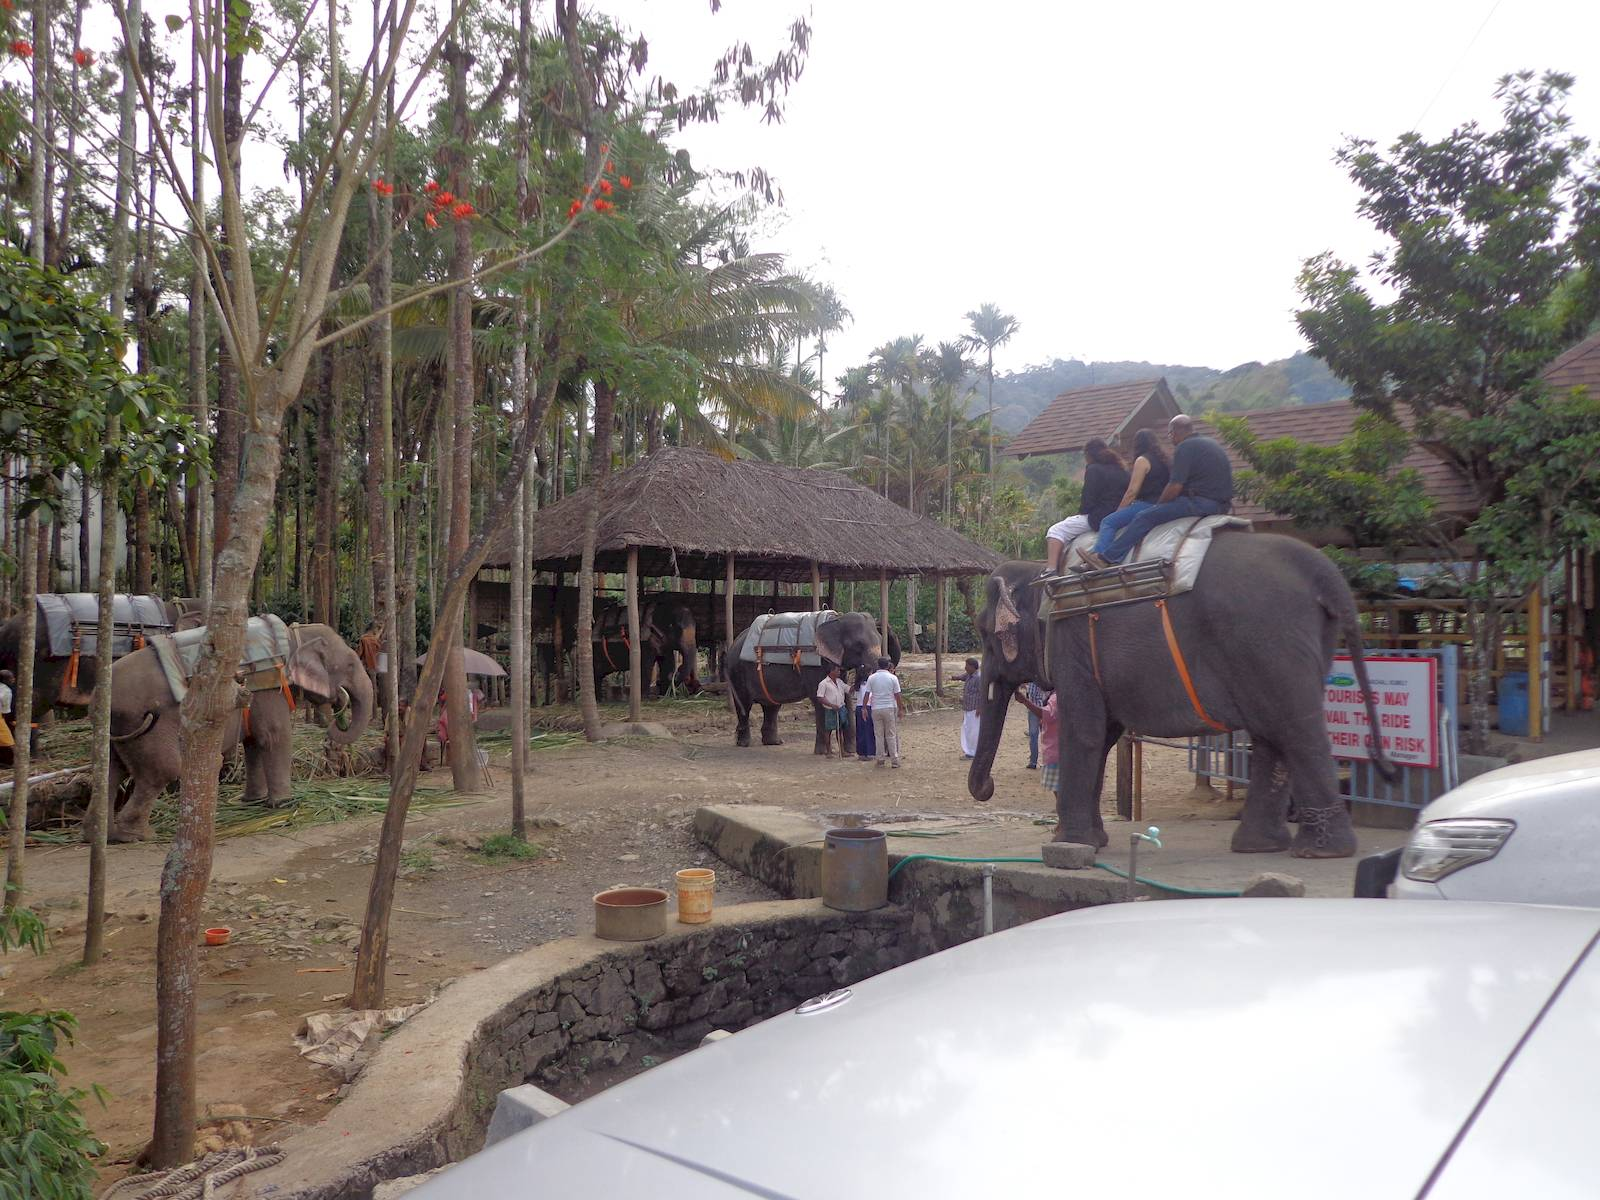 Elephant rides outside the Kalari / Kathakali centre.